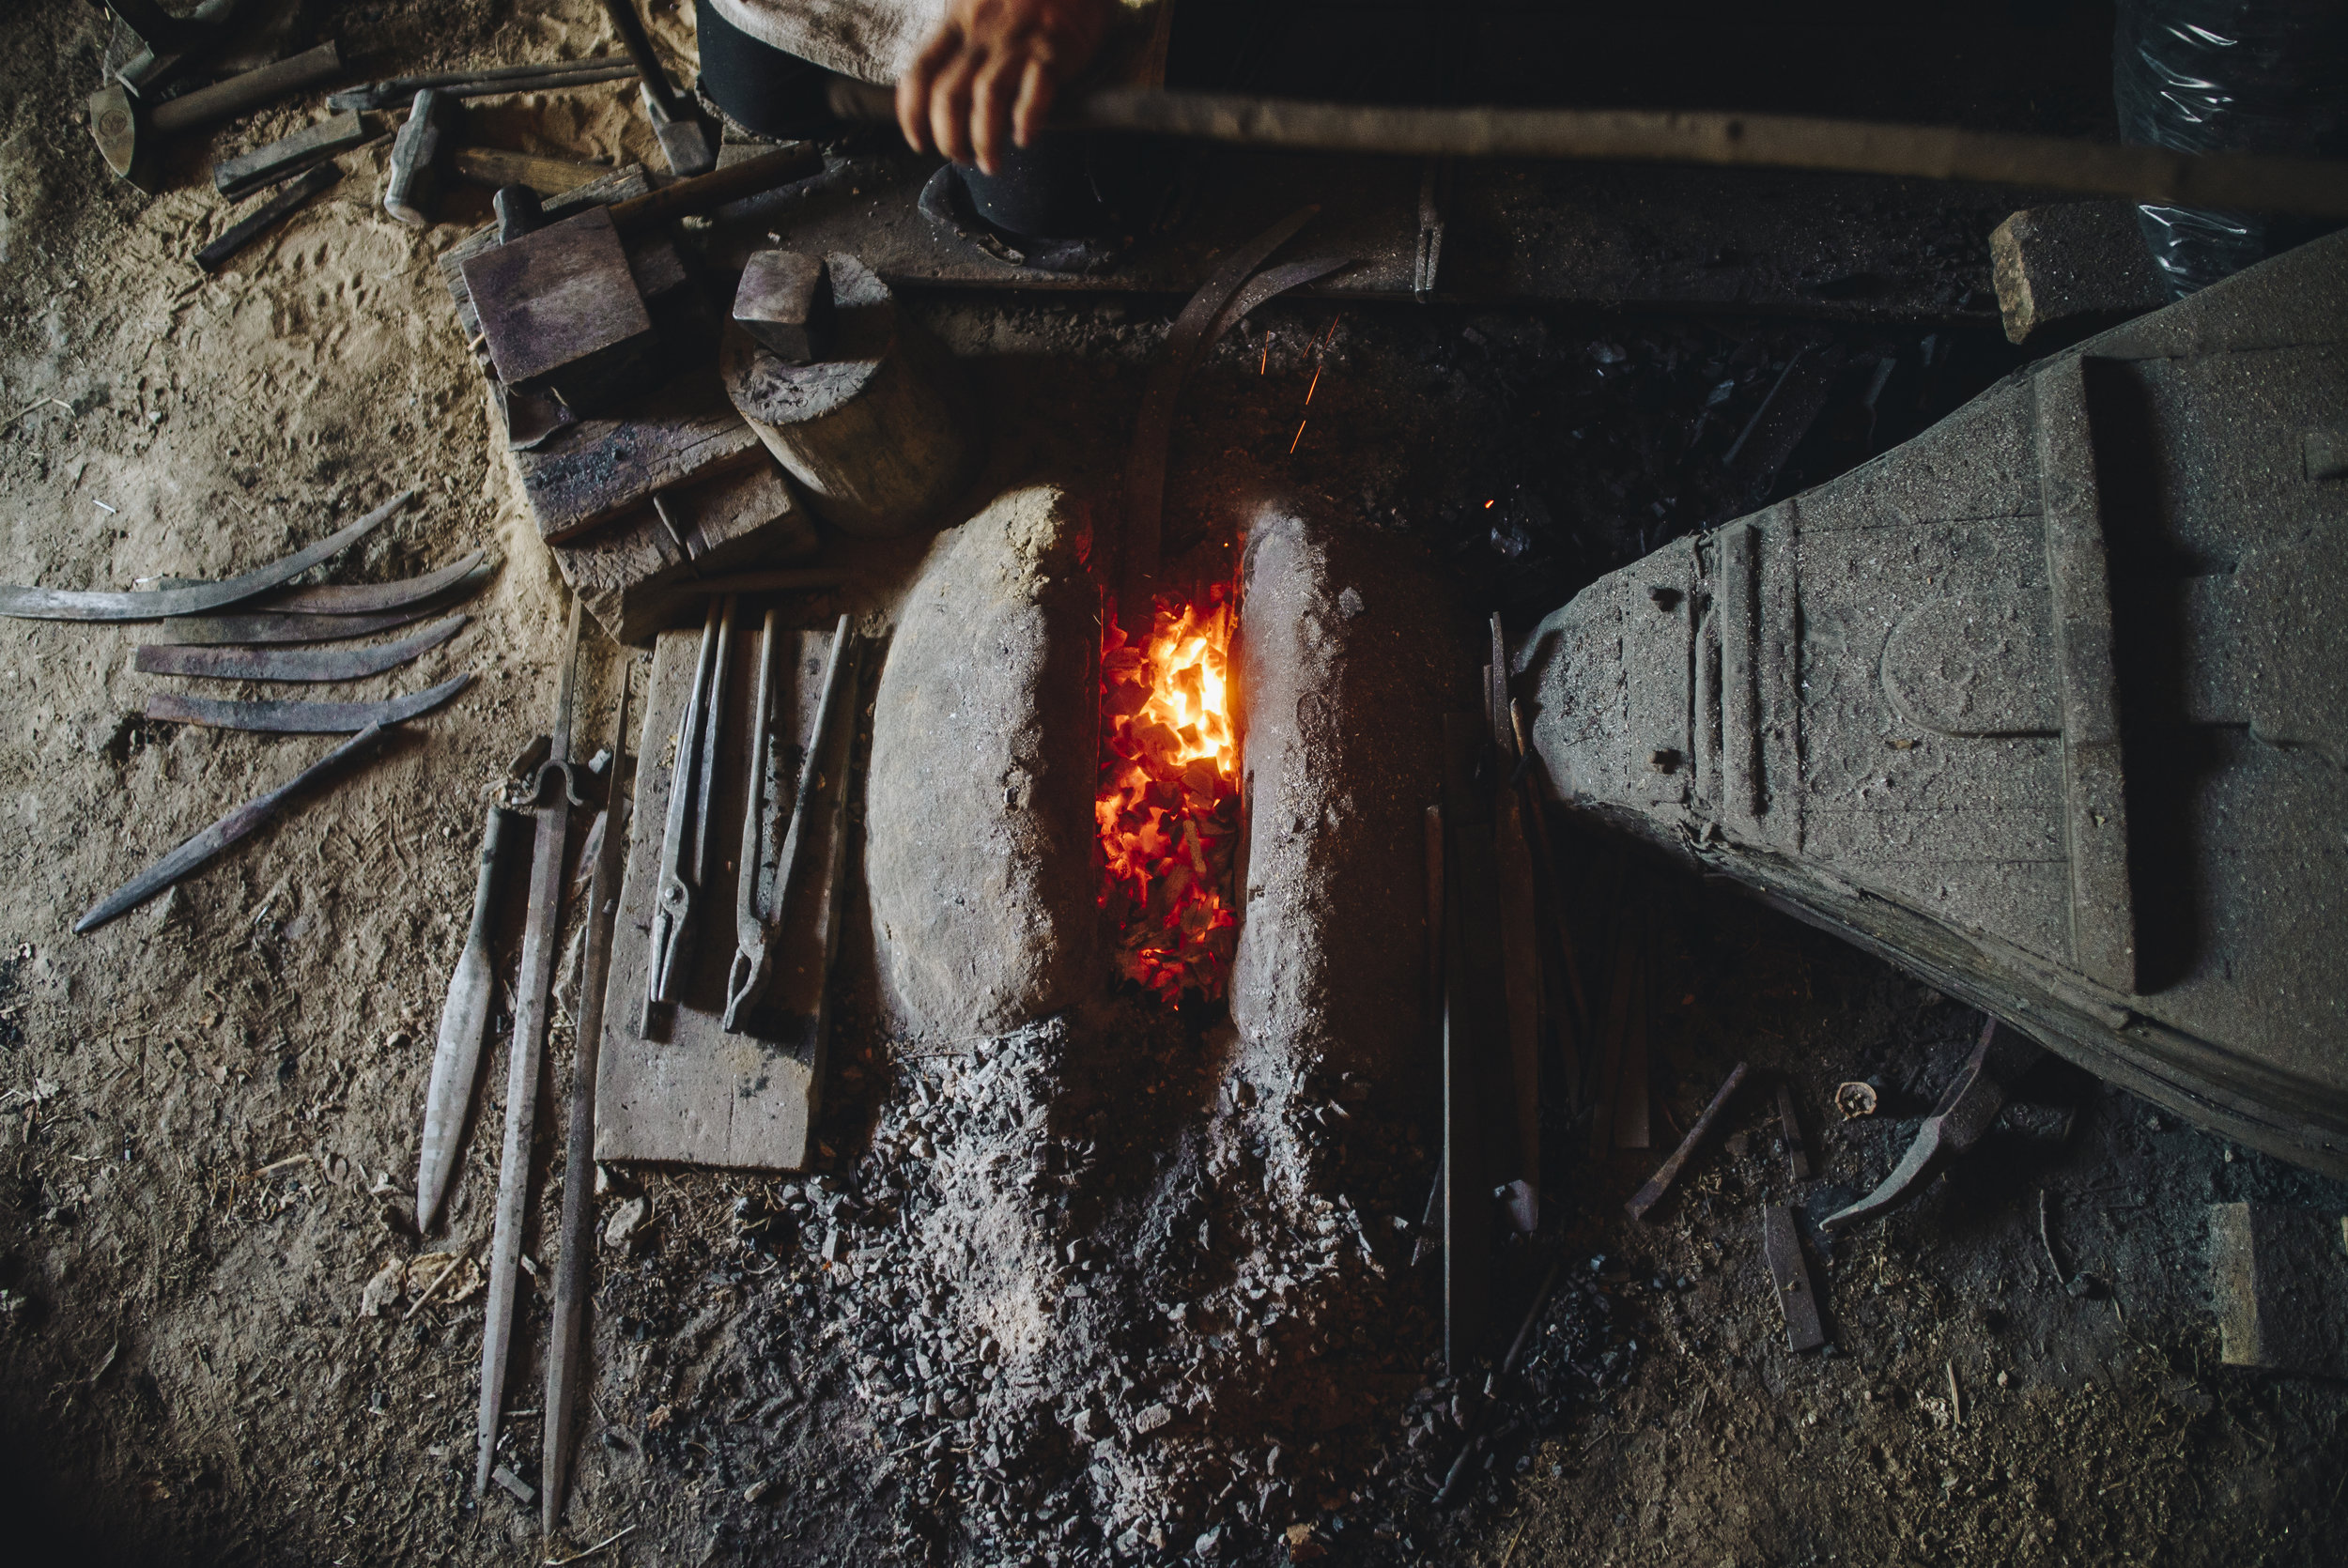 The mysticism of blacksmithing in Craiva Veche -